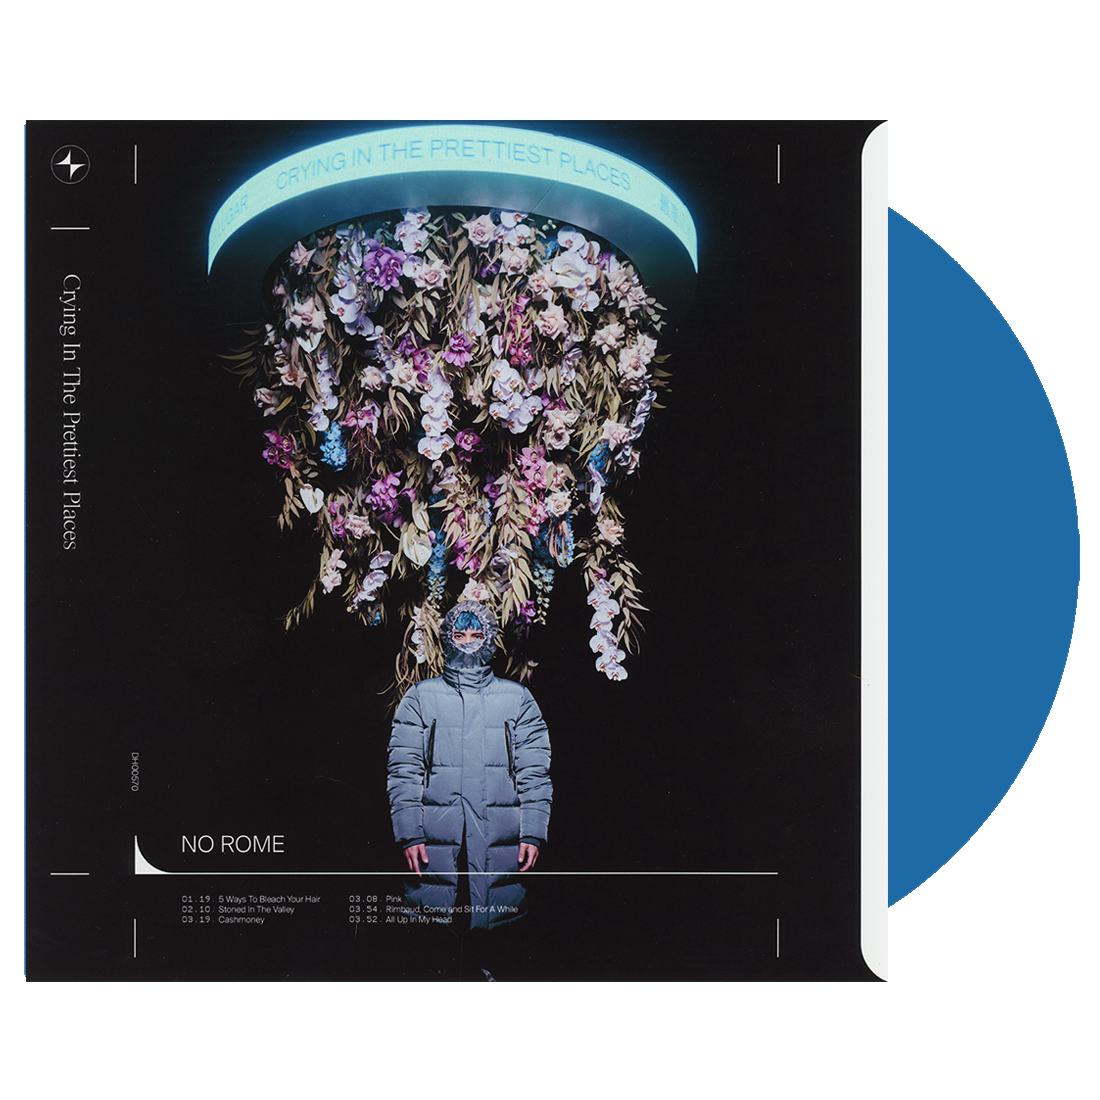 No Rome: Crying In The Prettiest Places Vinyl